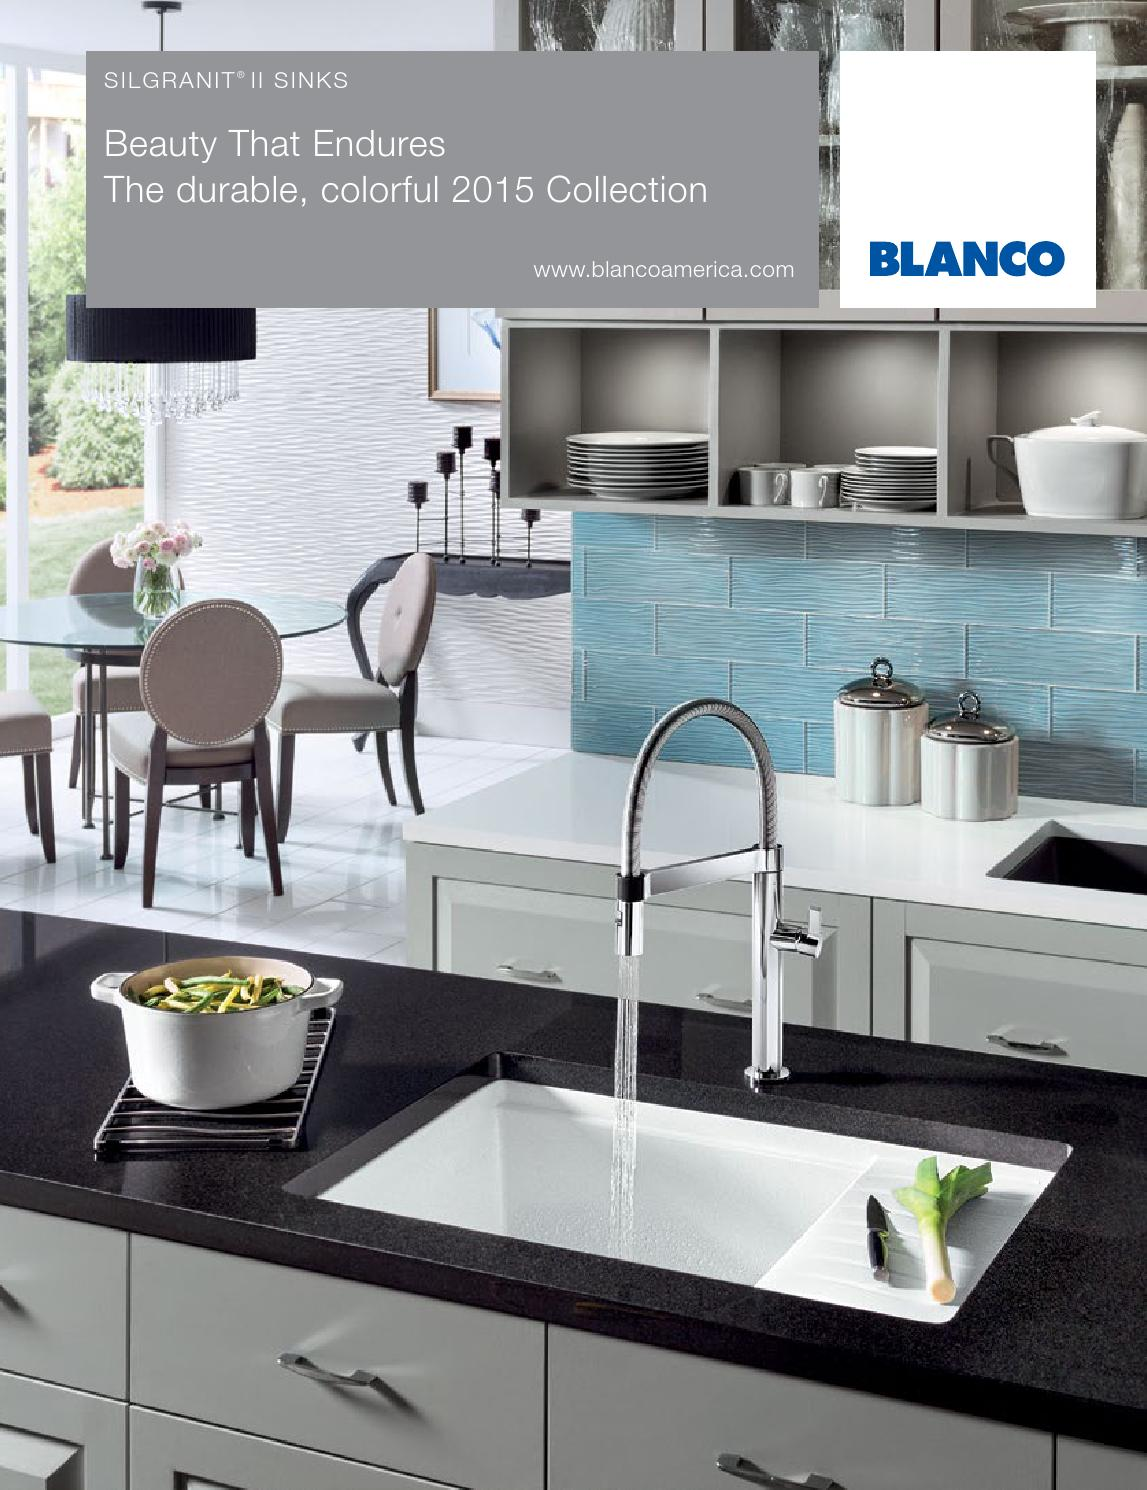 2015 blanco silgranit sink brochure by blanco issuu for Blancoamerica com kitchen sinks